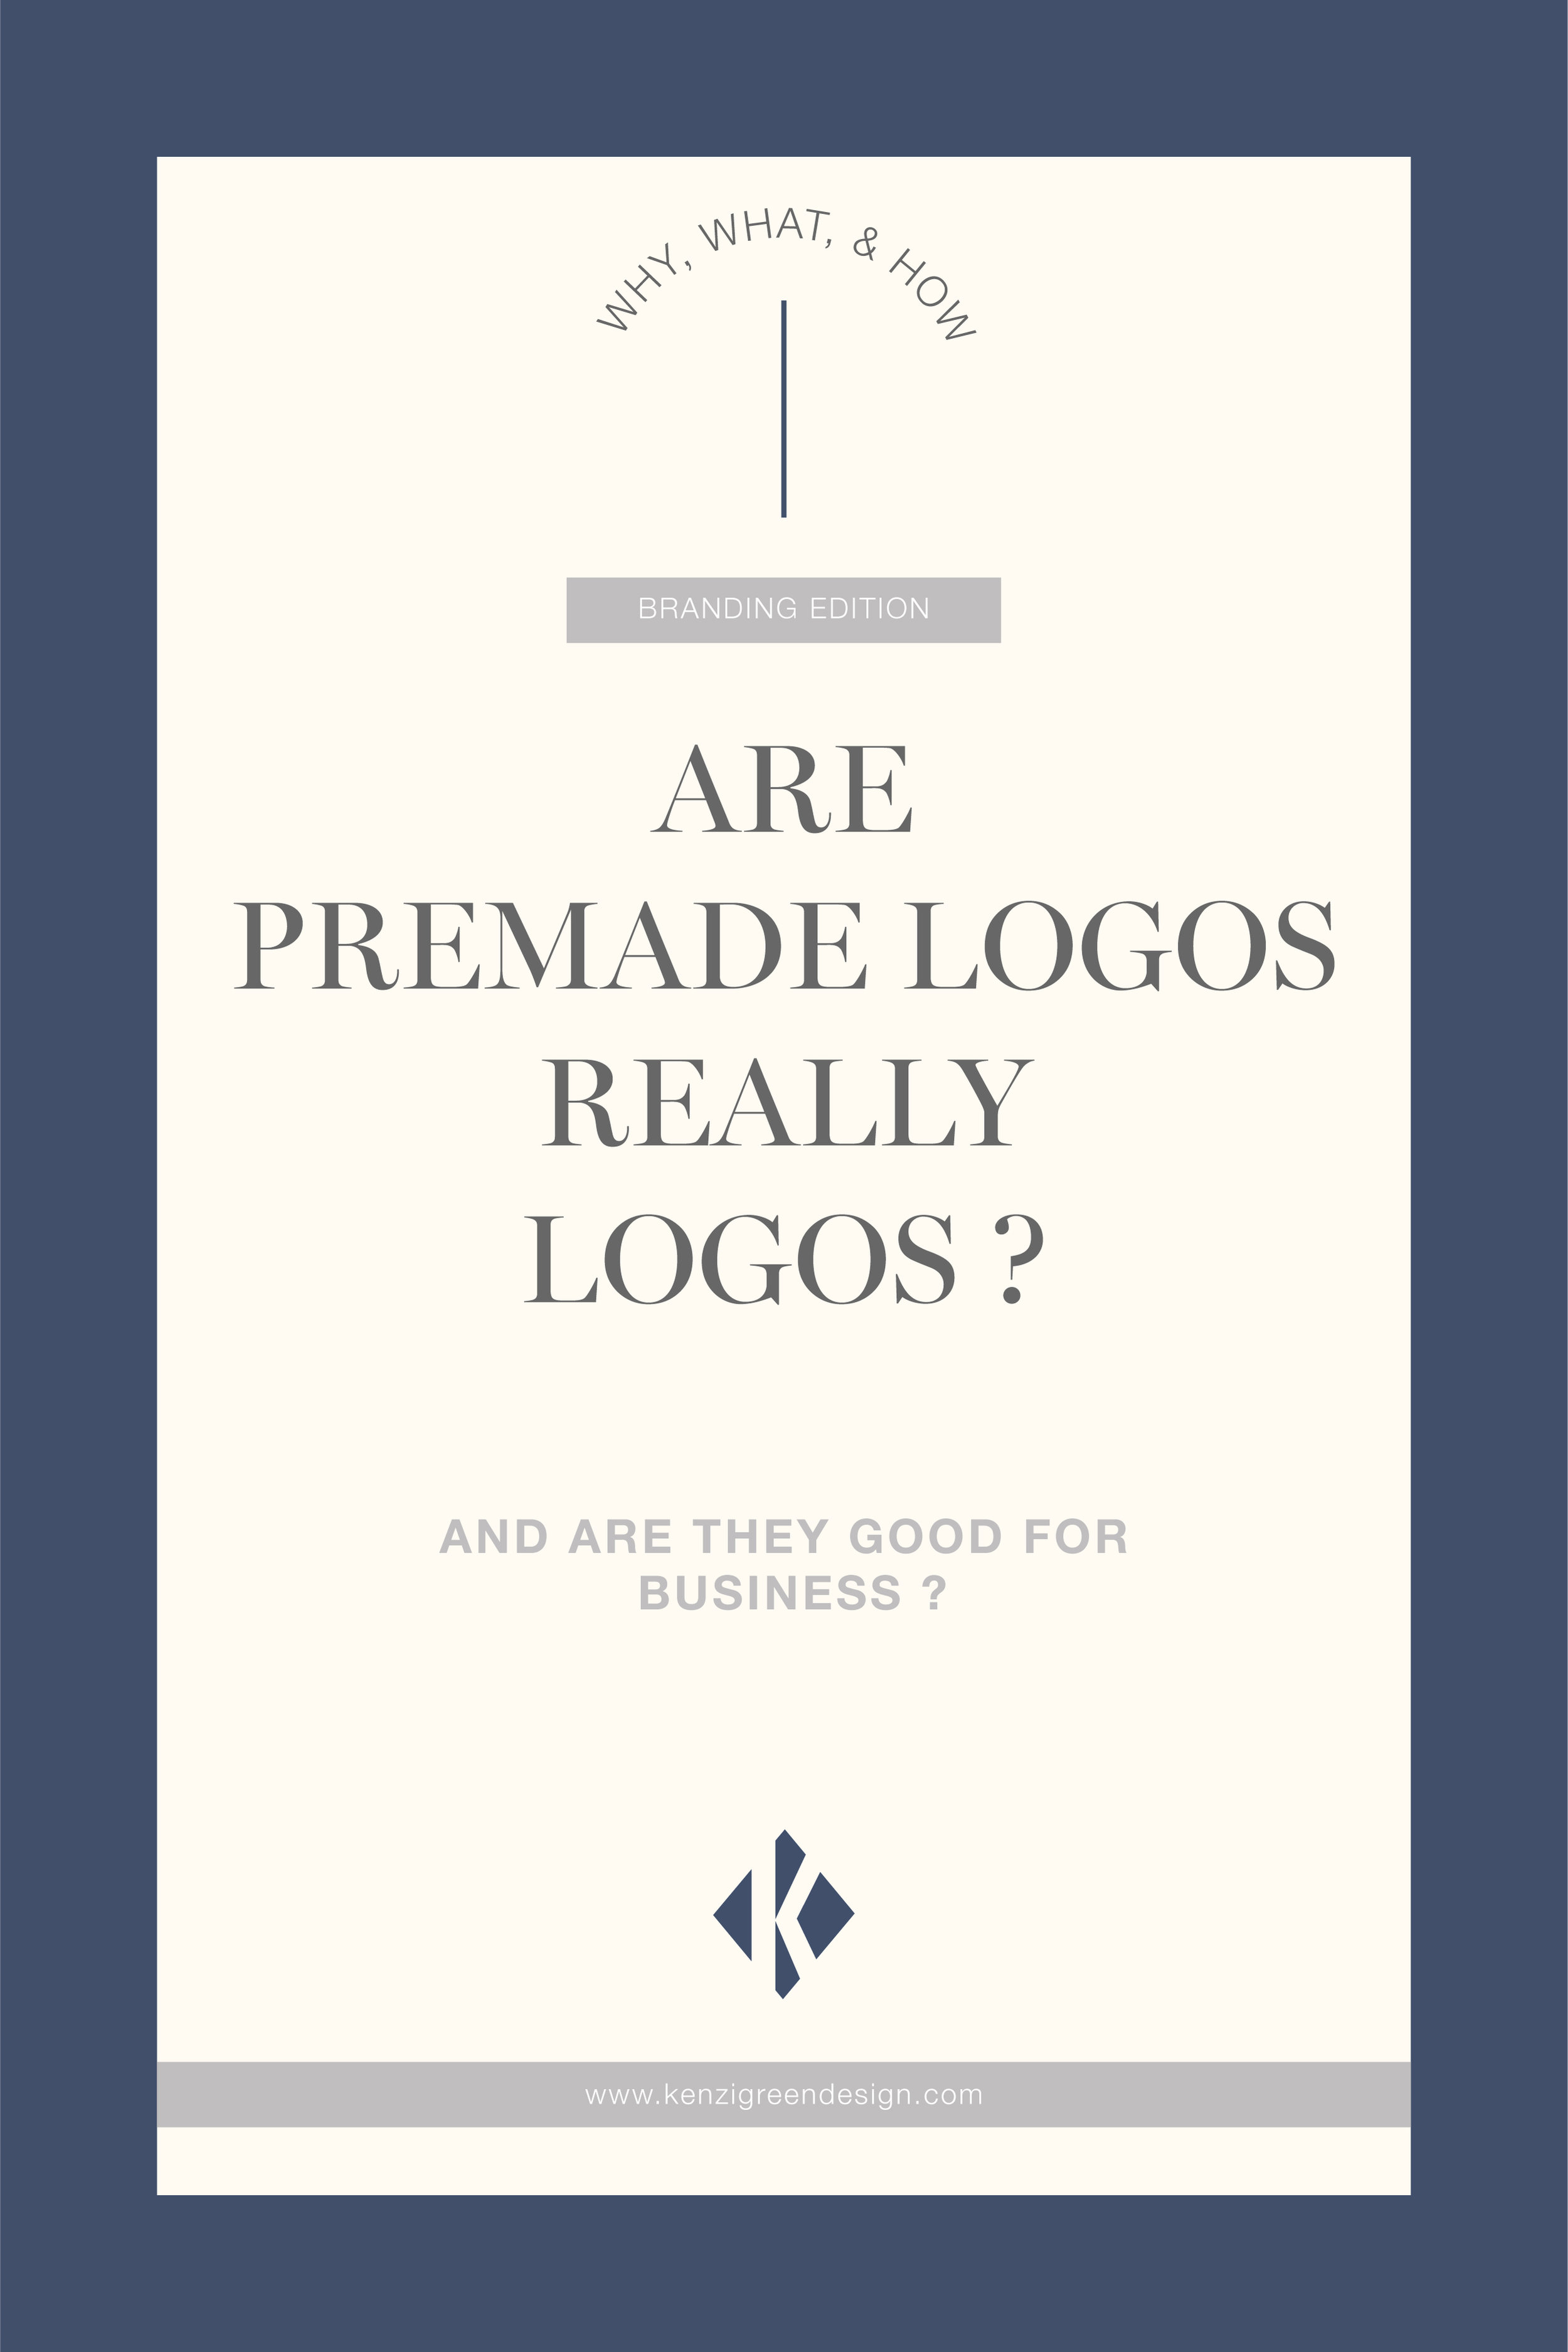 Are Premade Logos Really Logos